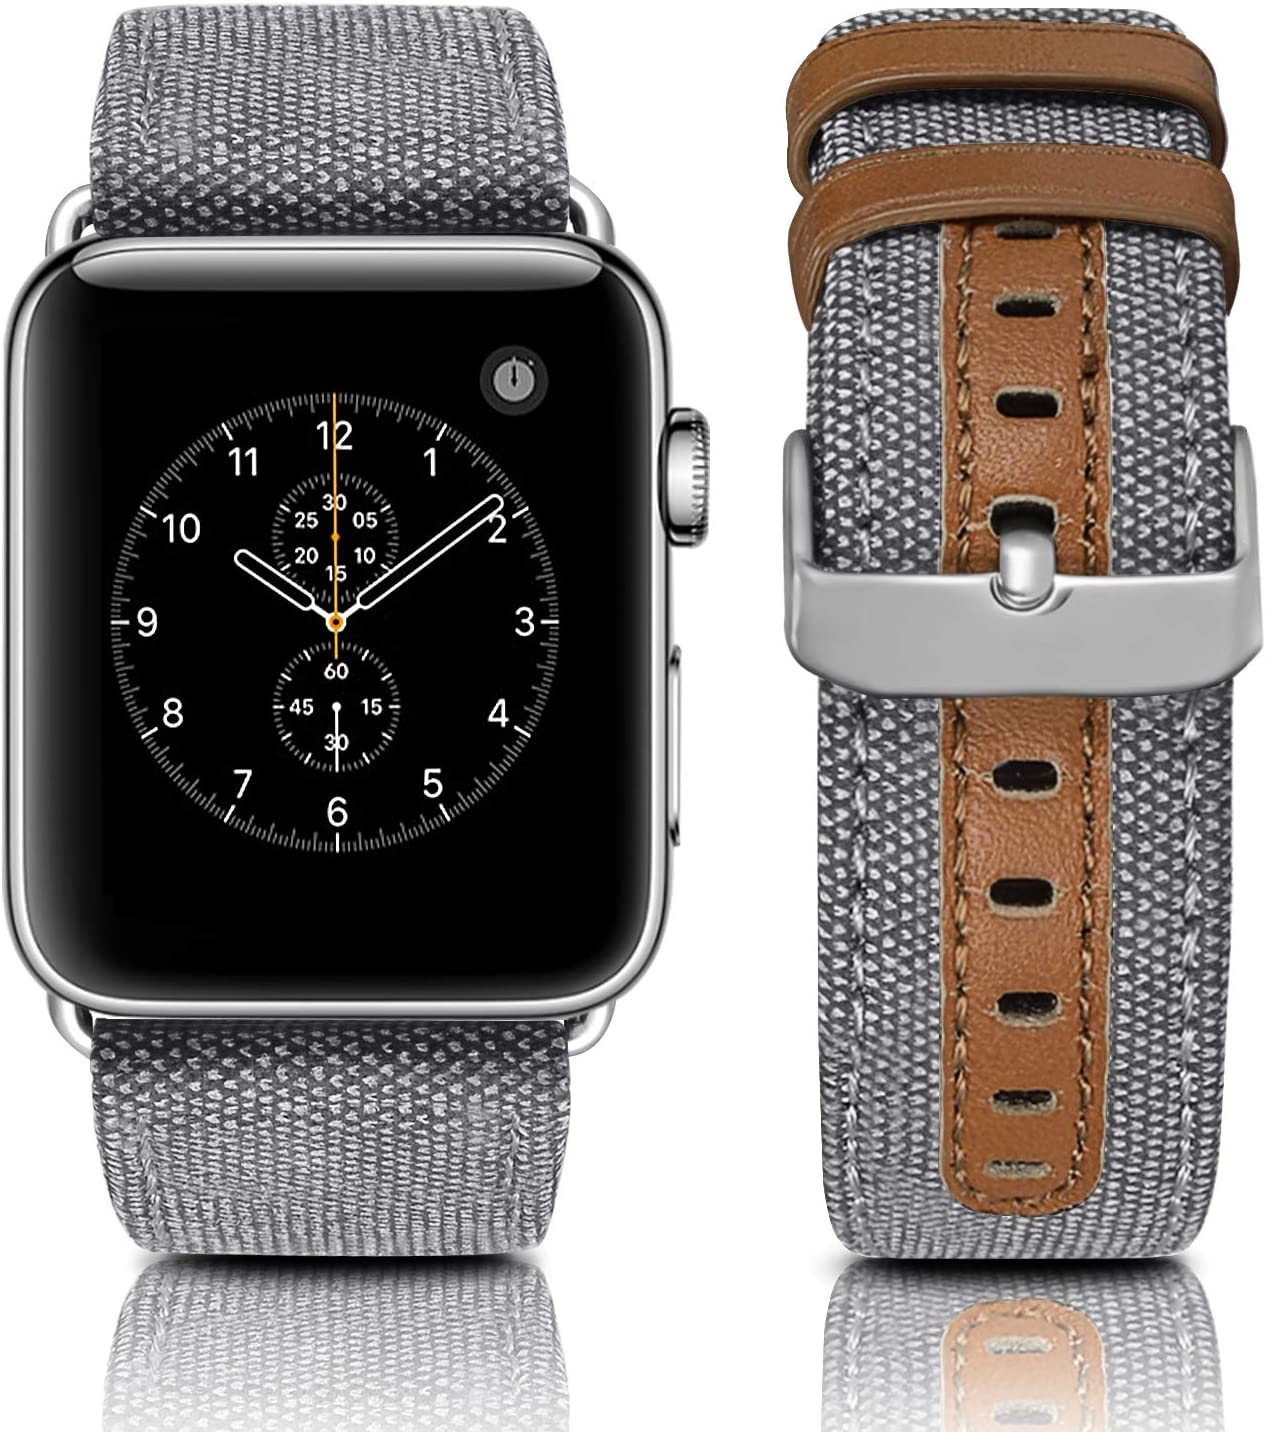 Jobese Bands Compatible with Apple Watch 42mm/44mm 38mm/40mm, Elegant Canvas Fabric Genuine Leather Straps with Black Silver Buckle Compatible with Apple Watch Series 6/5/4 /3/2/1